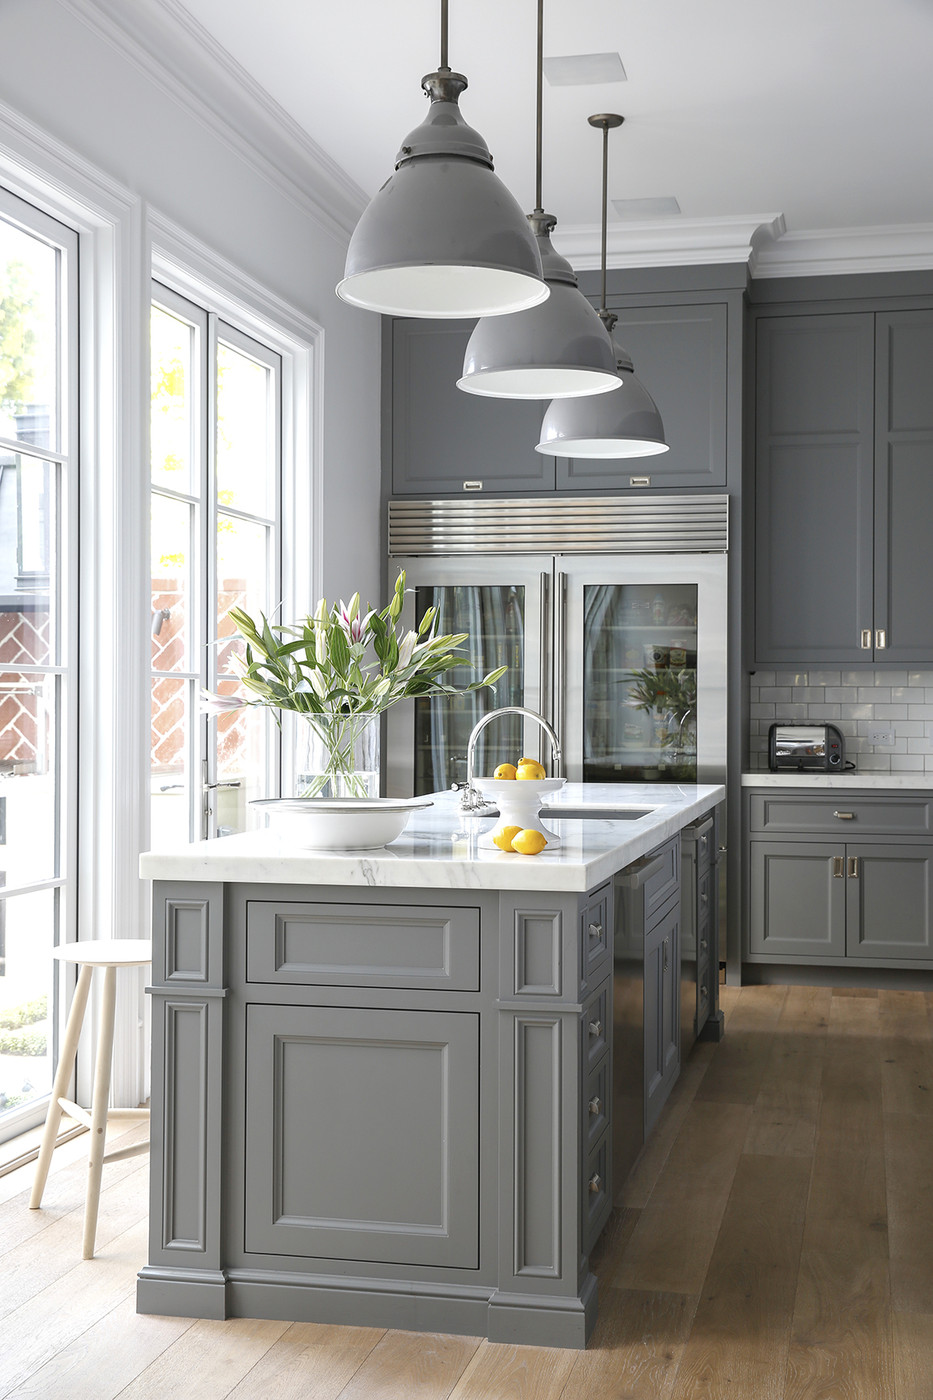 kitchen cabinets light gray light gray kitchen cabinets Kitchen Cabinets Light Gray The Only Shade of Gray Cool Kitchen Ideas Lonny The